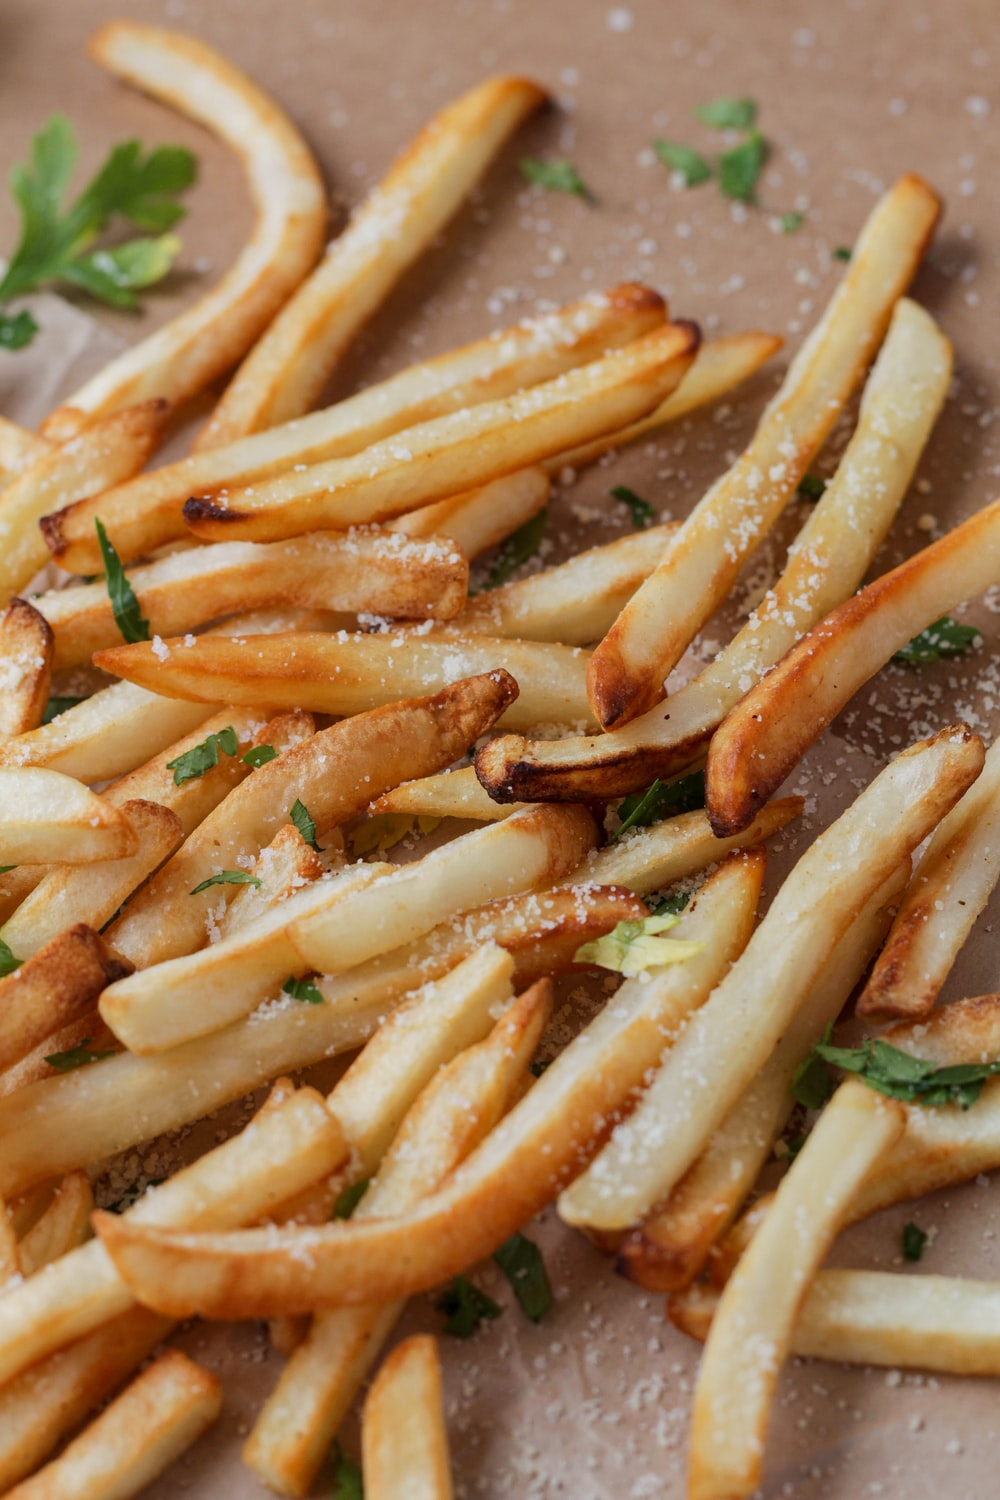 brown fries on white ceramic plate